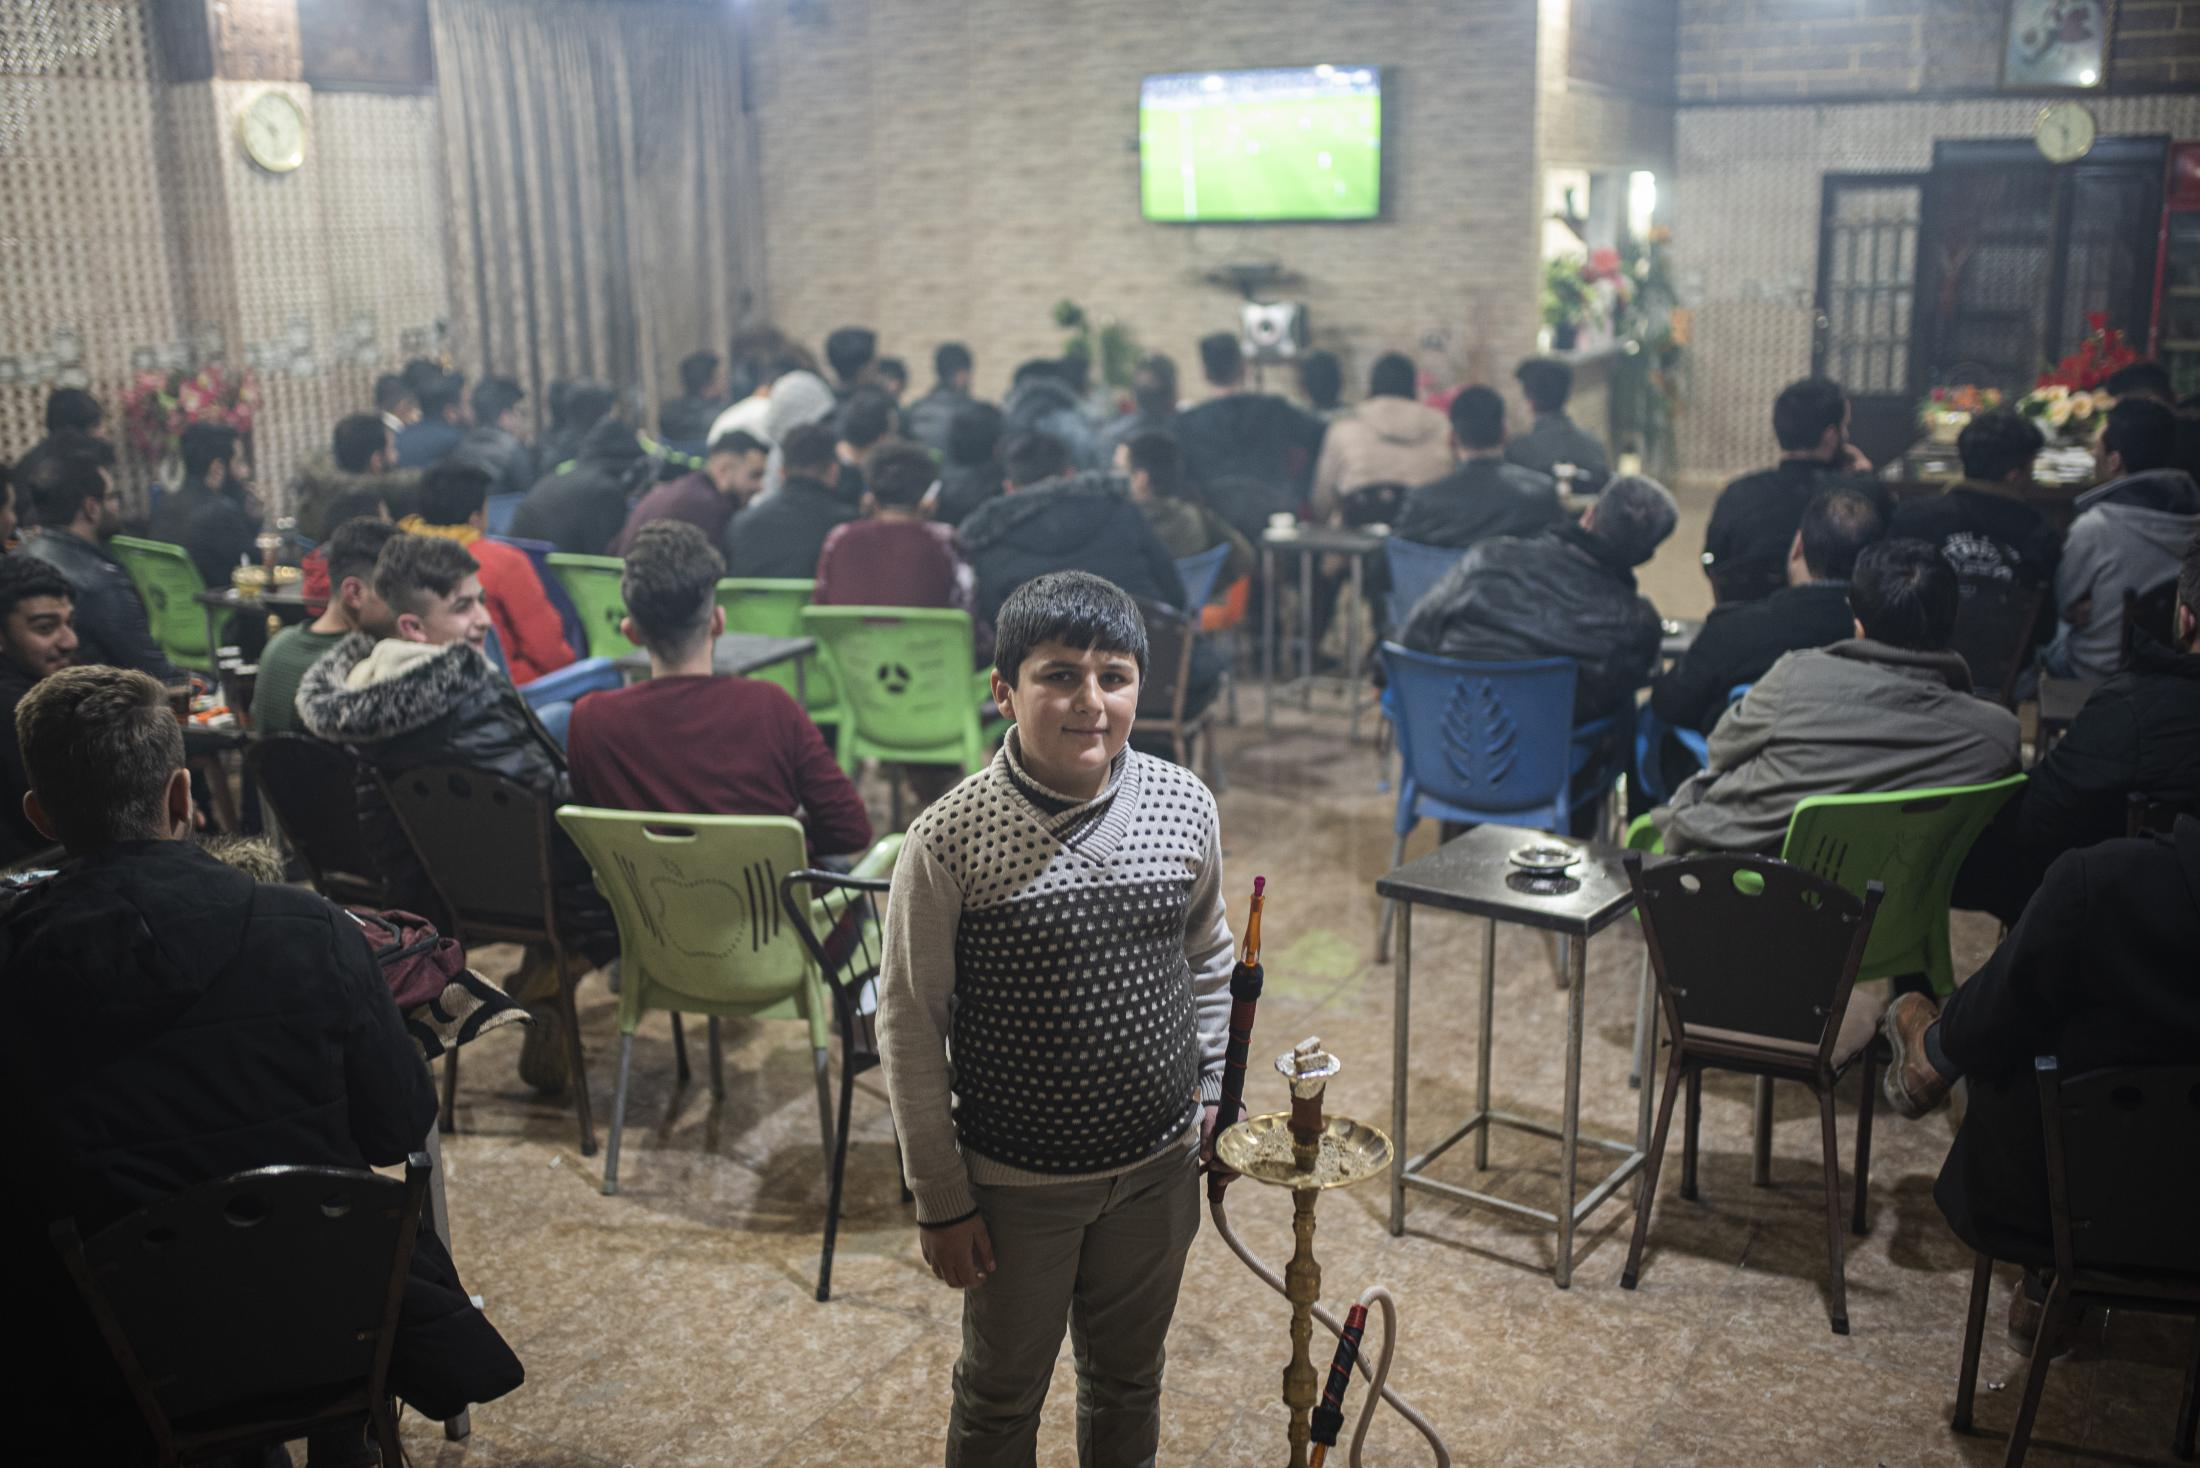 Ahmed, a Serekaniye refugee, working in a Sisha Bar during the clasico match (Barcelona - Madrid). Ahmed lost his father when yihadists kill him publicy in the streets of his home town Serekaniye and now is working in his cousin bar in Qamishlo. After the withdrawal of US troops from northern Syria in October 2019, Turkey launched an offensive against the predominantly Kurdish areas in the northeast of the country along Islamist forces. Calls for war crimes investigations into the conduct of Ankara-backed militias are mounting ever since. (Andoni Lubaki / Euskal Fondoa)